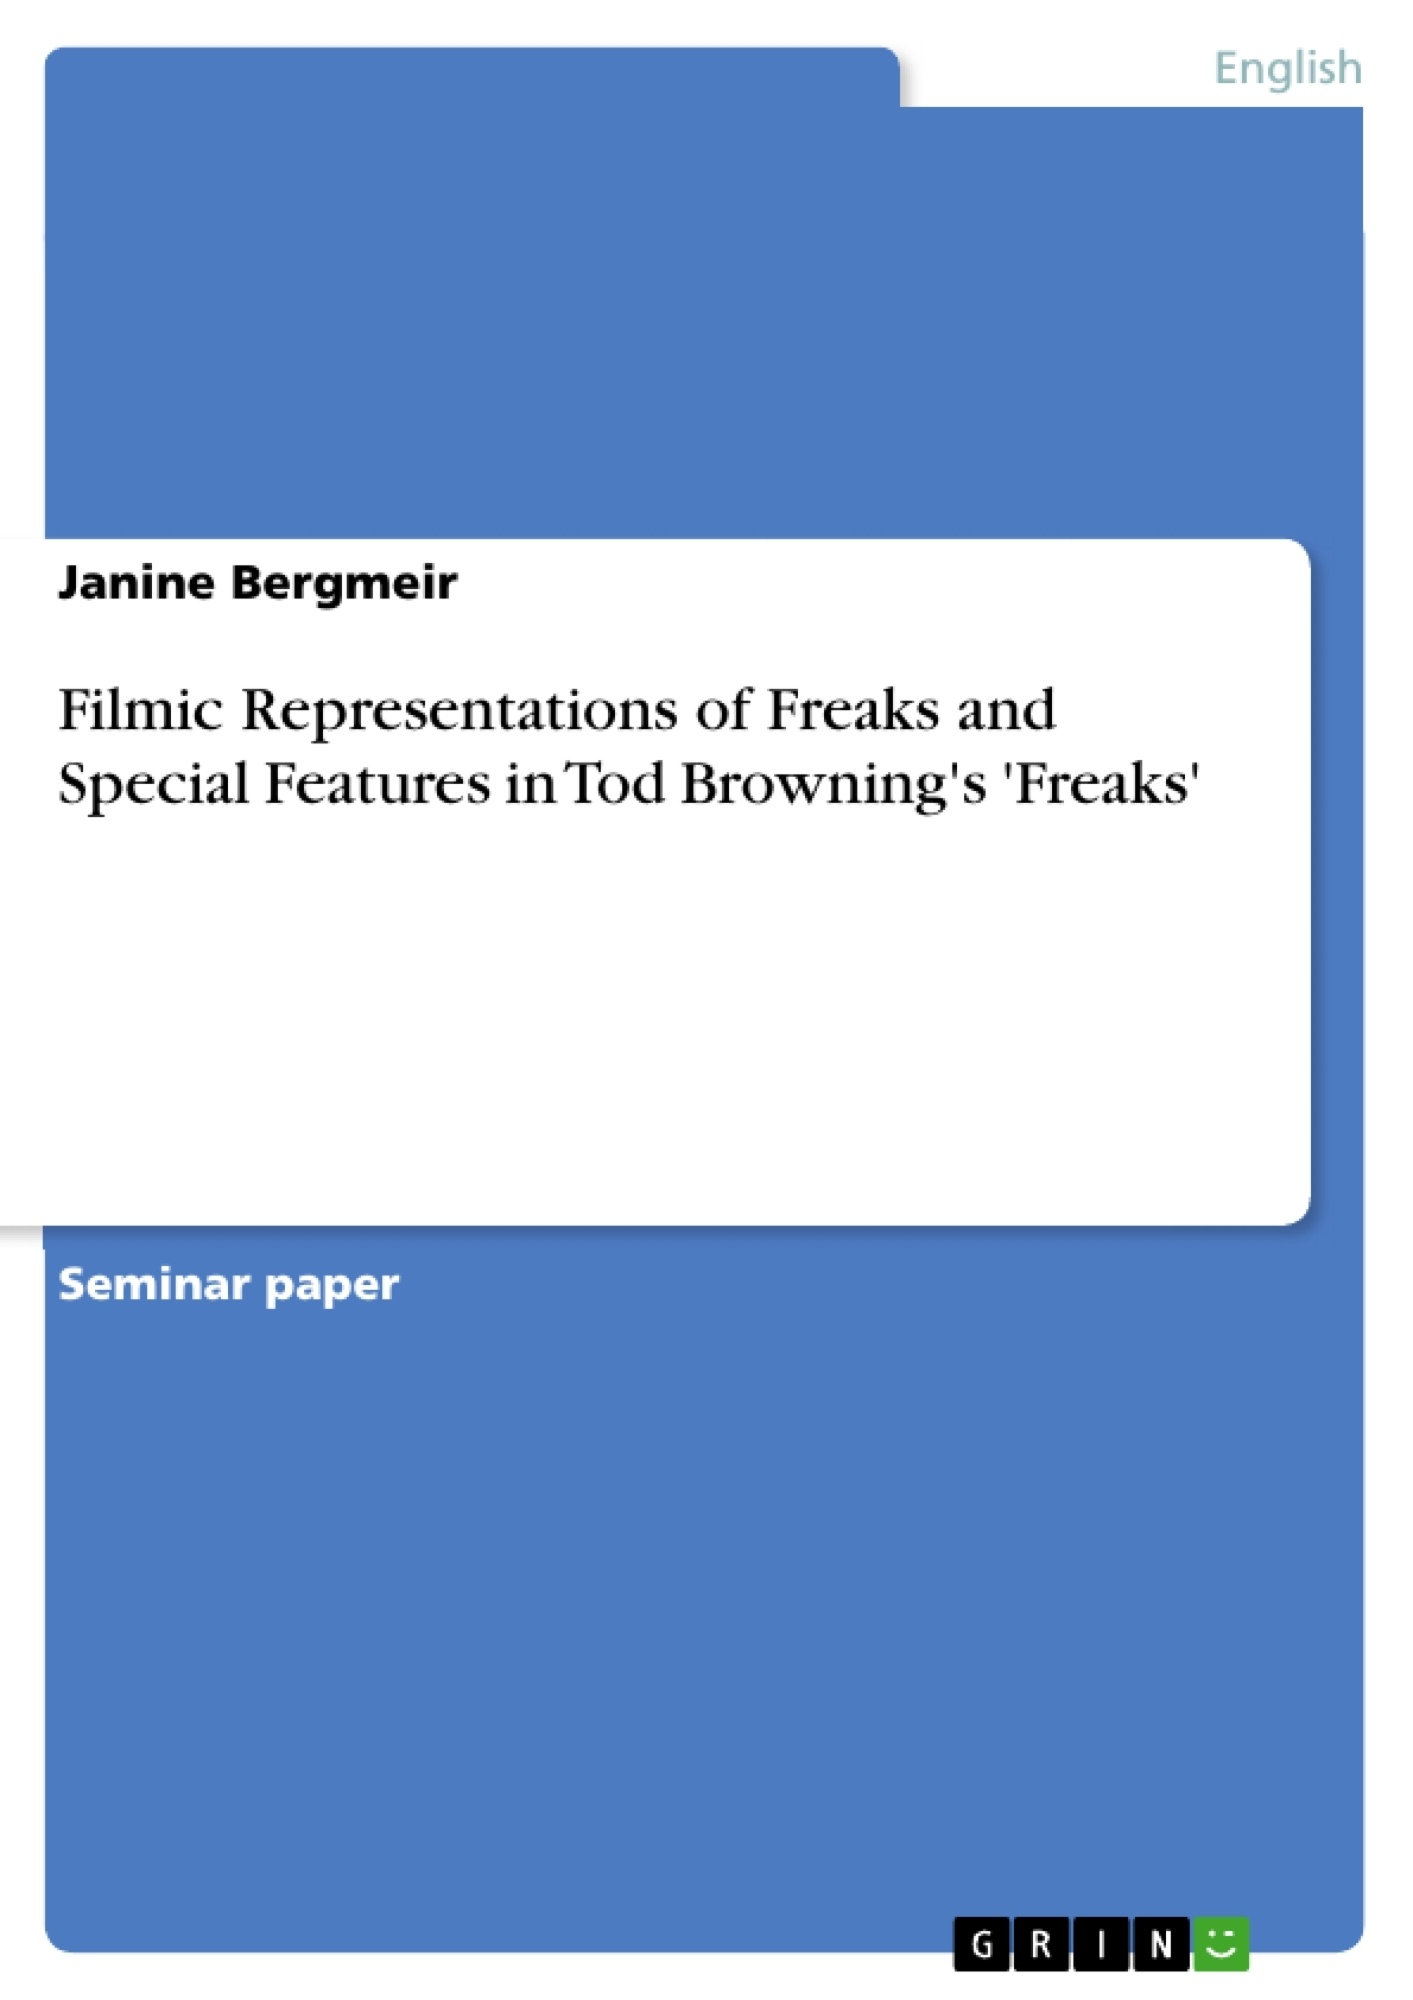 Title: Filmic Representations of Freaks and Special Features in Tod Browning's 'Freaks'